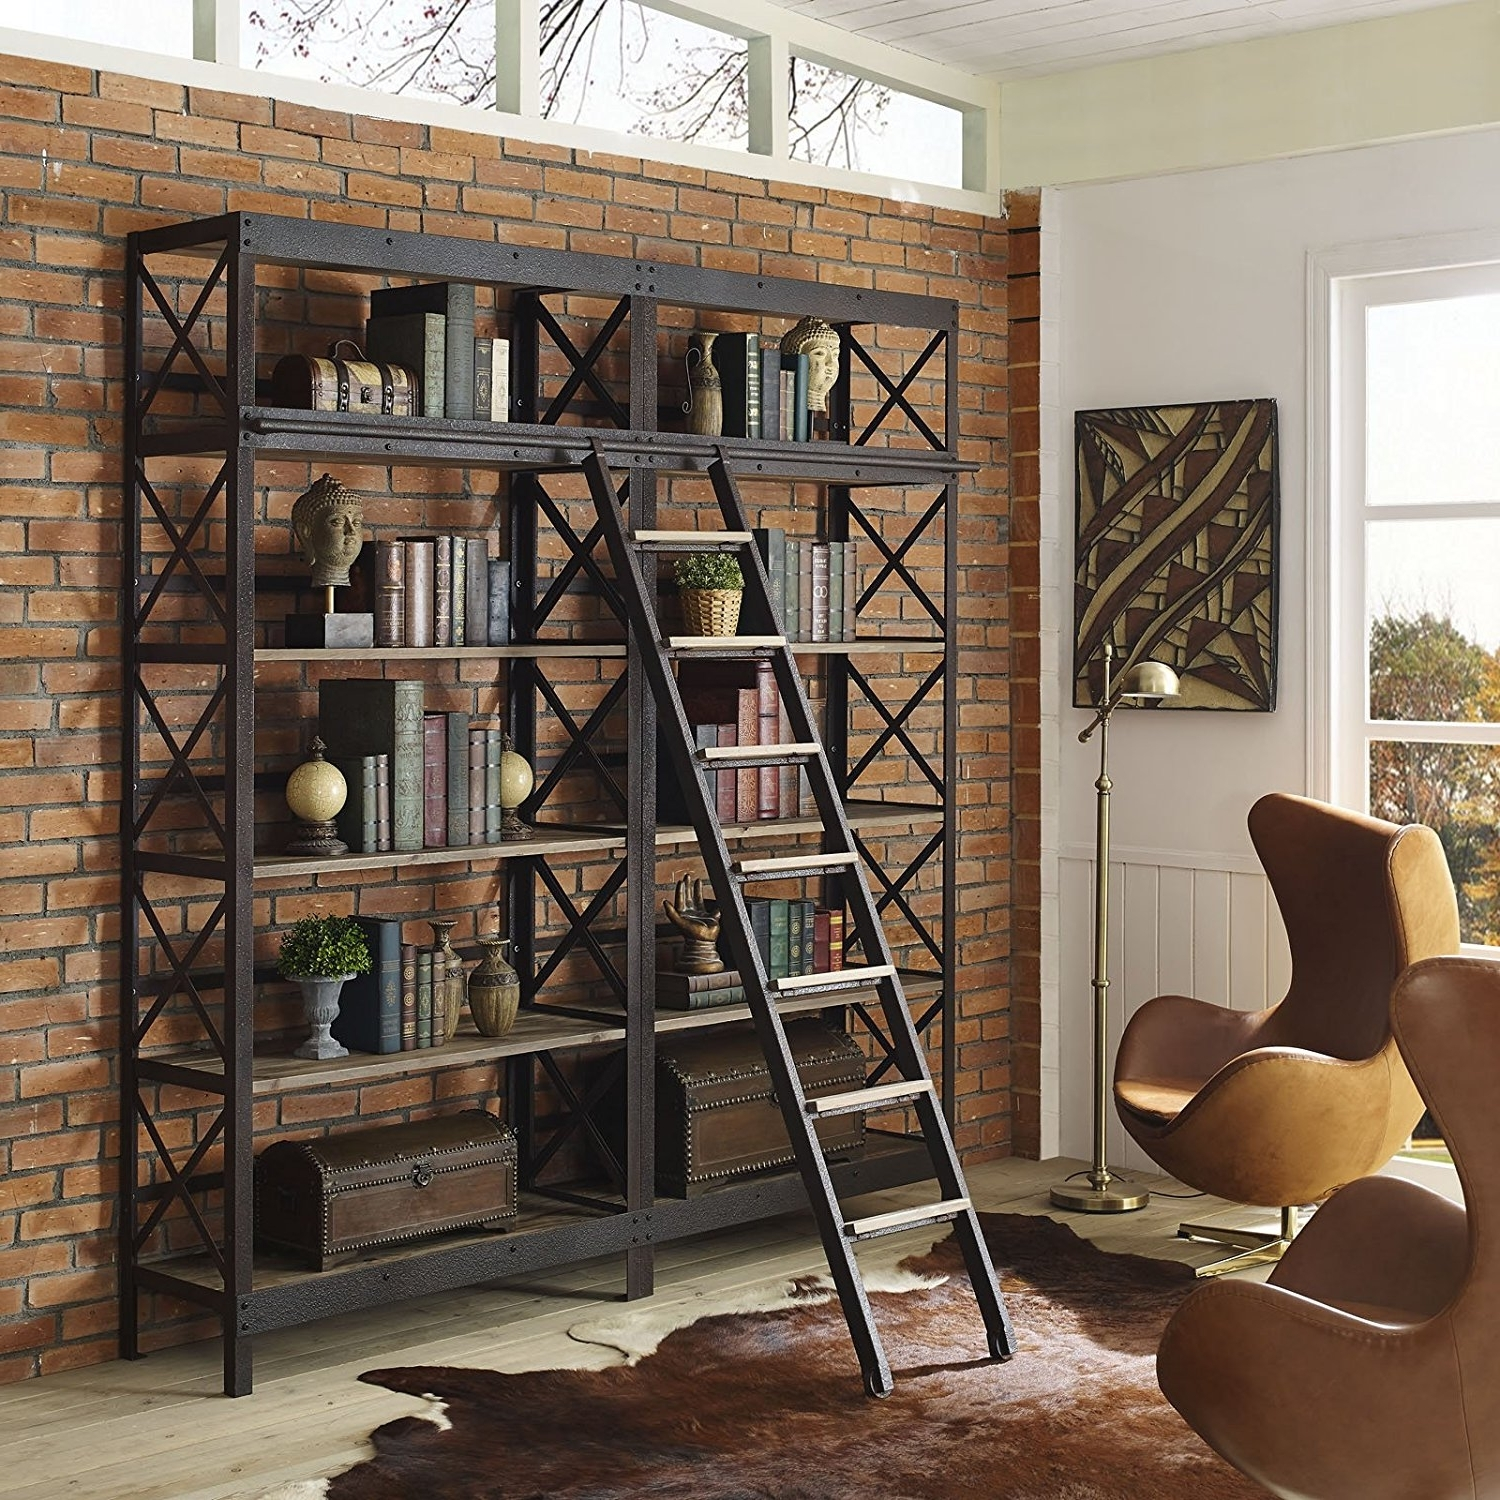 Trendy Amazon: Modway Headway Industrial Modern Wood Bookshelf With Inside Bookcases With Ladder And Rail (View 11 of 15)